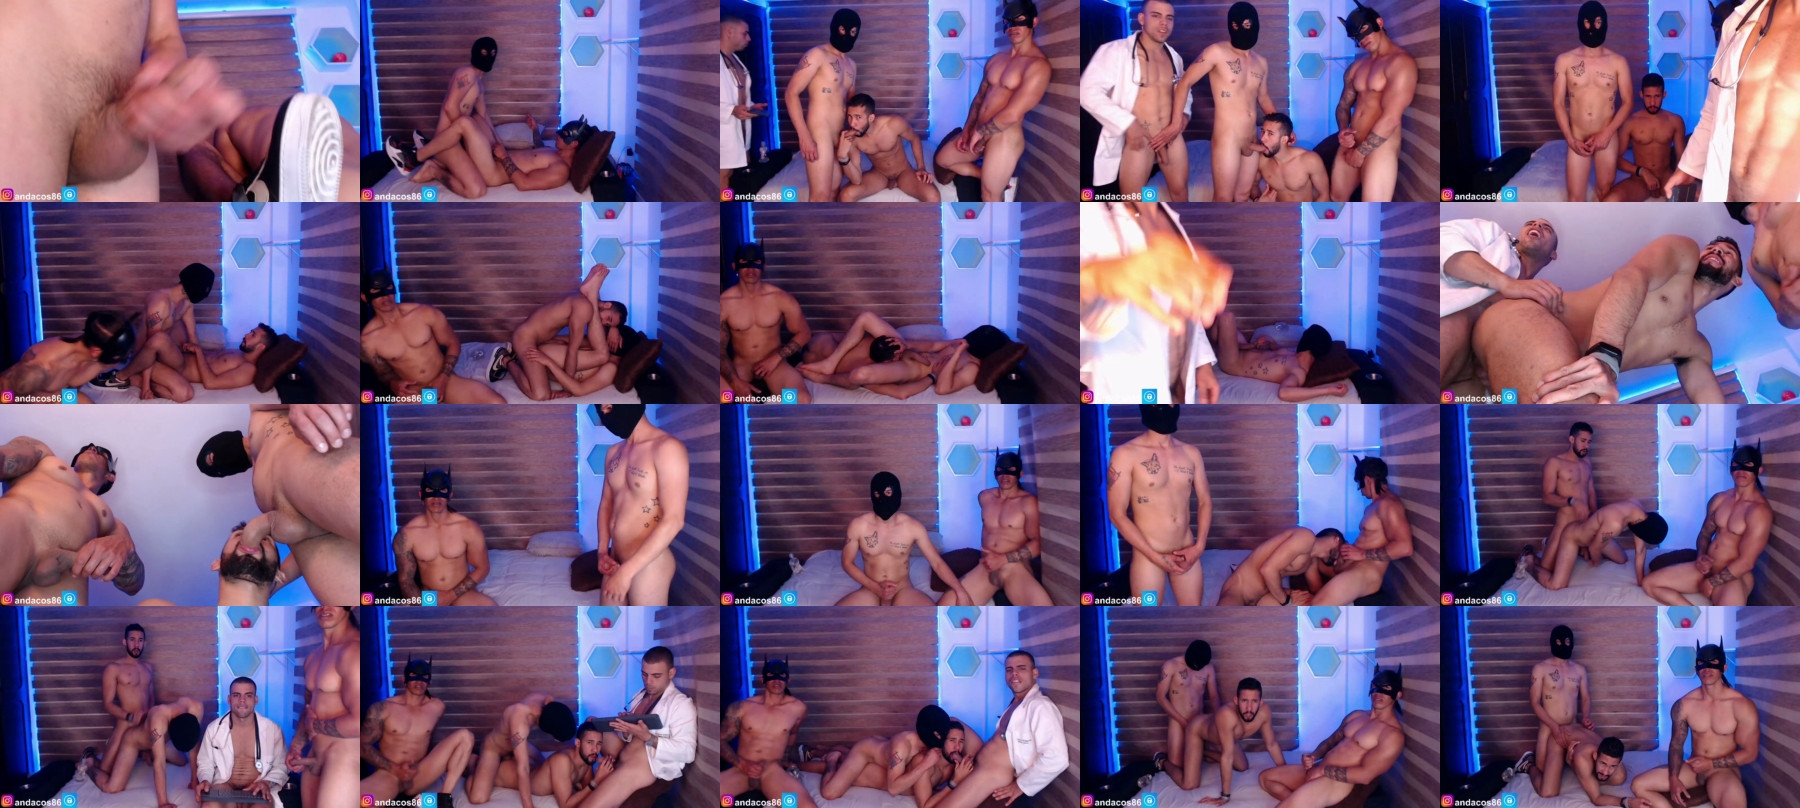 Jeff_And_Friend Chaturbate 20-04-2021 video DIDN